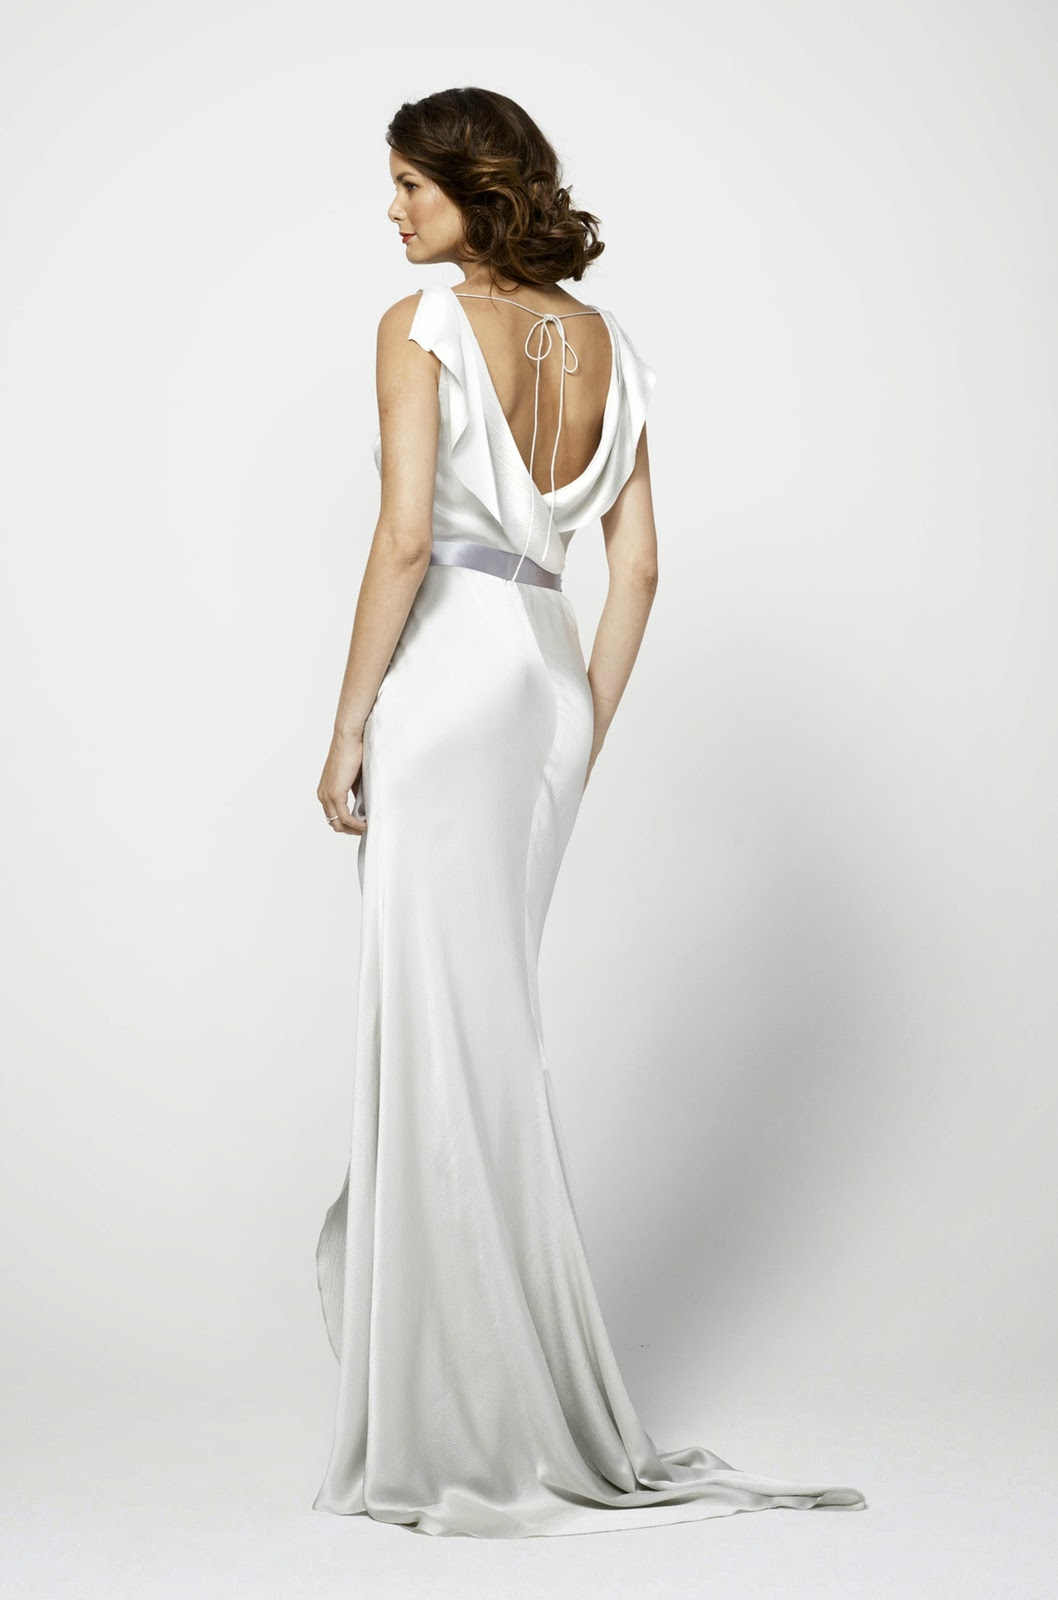 Backless White Wedding Dresses UK with Short Sleeves Photos HD Ideas